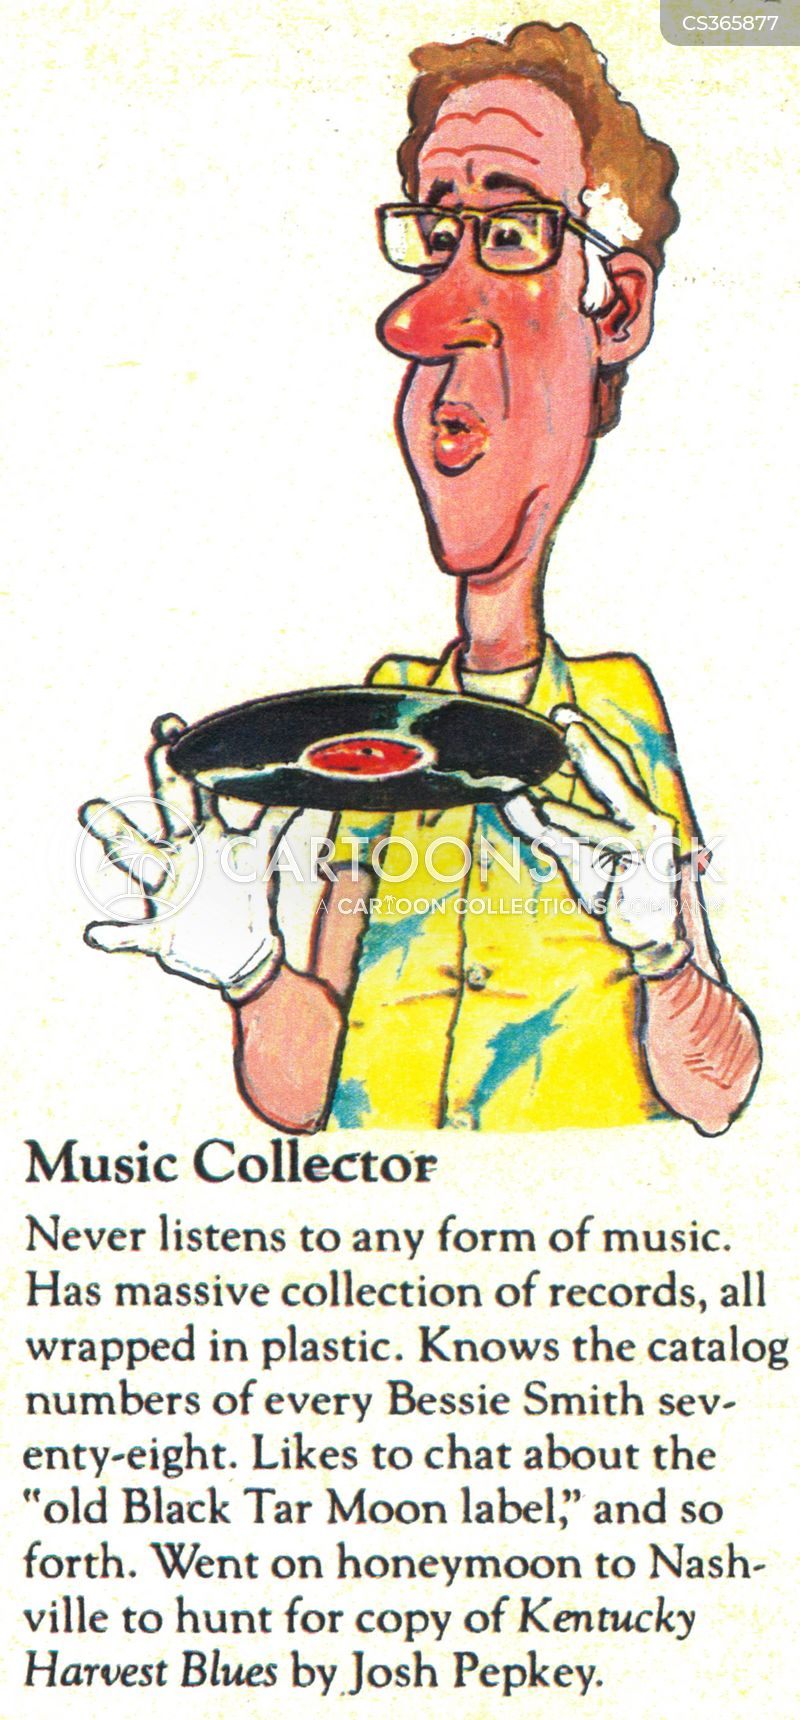 record collectors cartoon